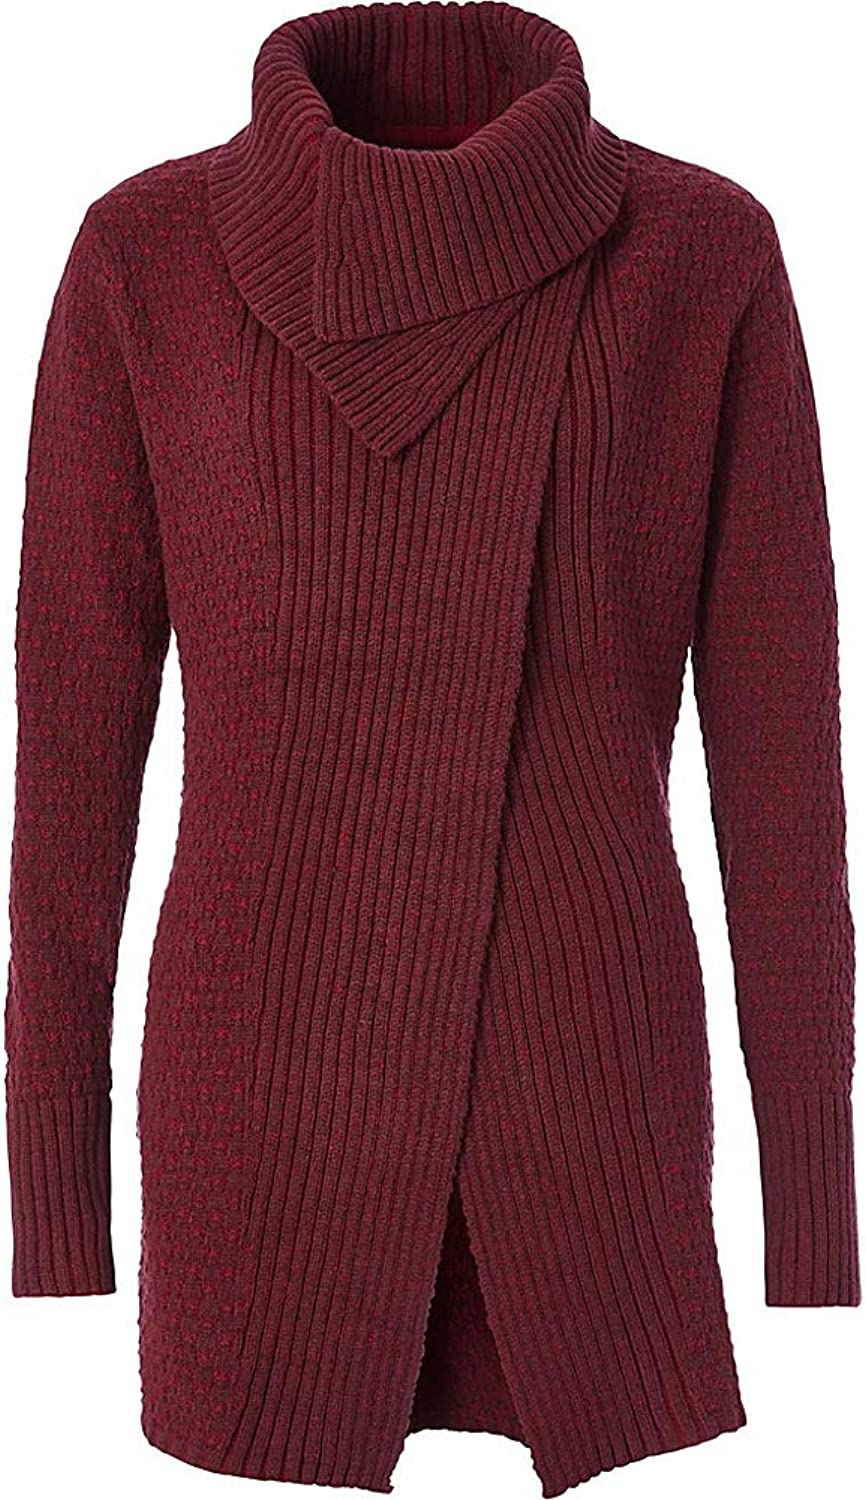 Royal Robbins Women's Frost Cardigan Athletic Sweater